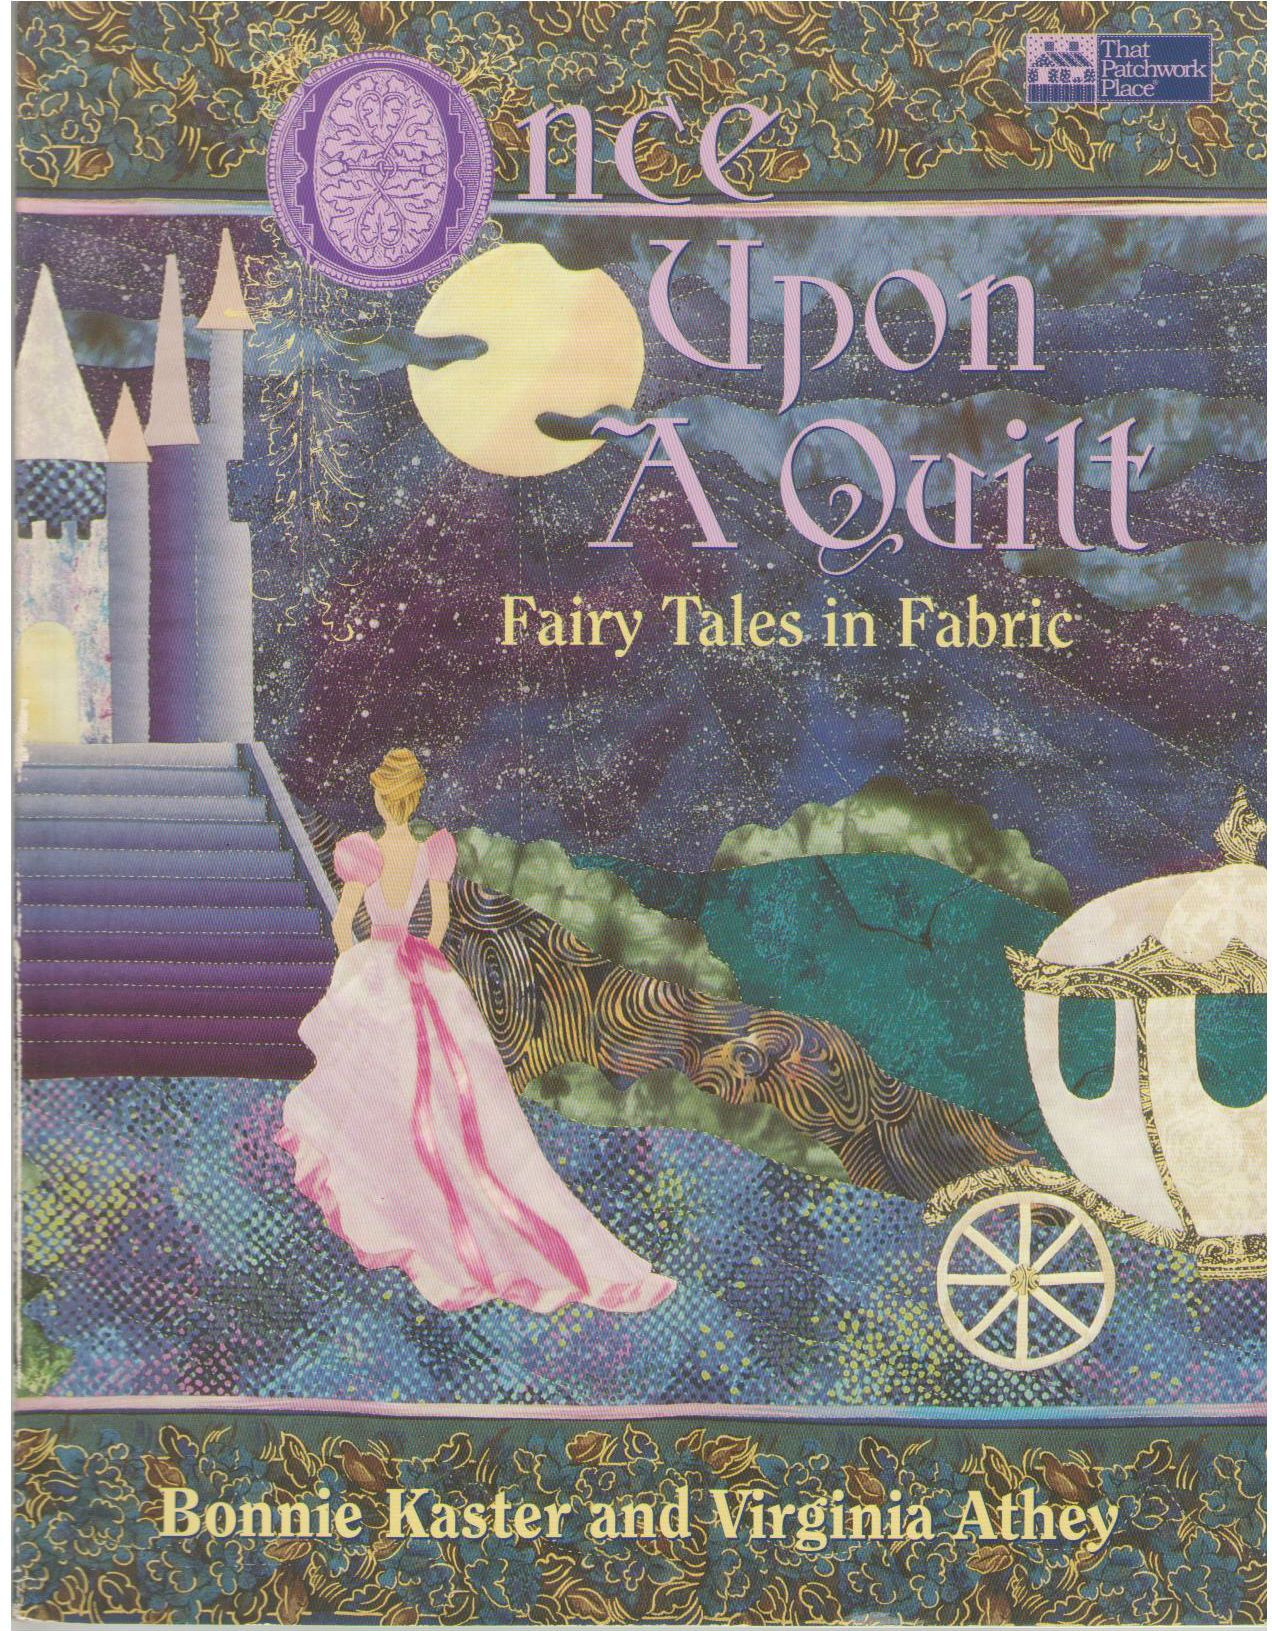 Once upon a Quilt: Fairy Tales in Fabric, Kaster, Bonnie; Athey, Virginia